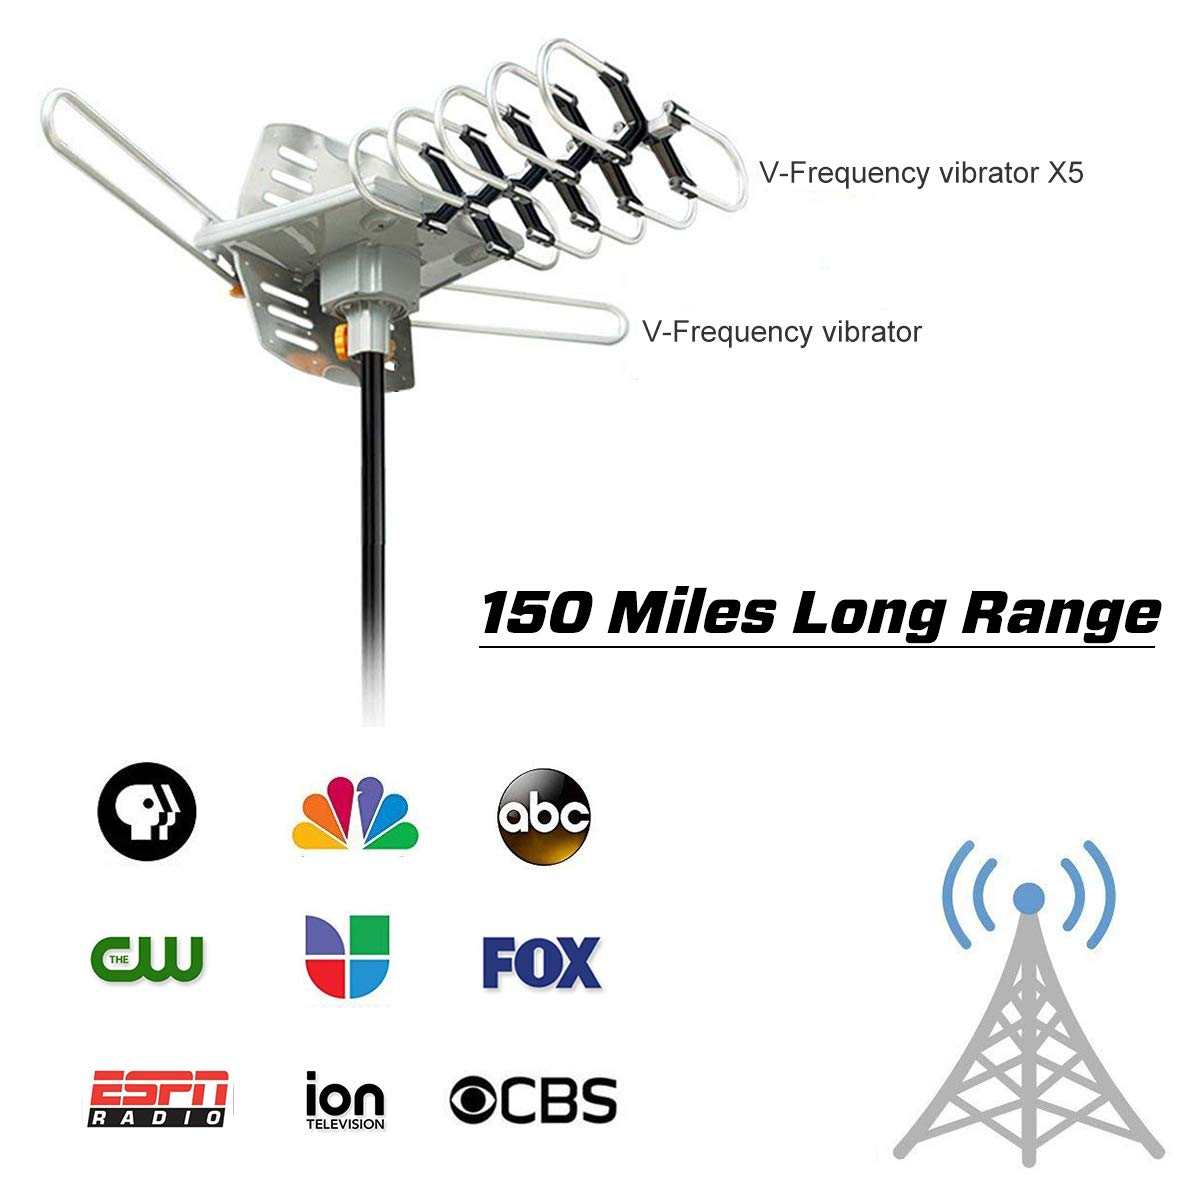 Outdoor HDTV Digital Antenna -150 Miles Range w/ 360 Degree Rotation Wireless Remote - UHF/VHF/1080p/ 4K Ready(Without Pole). Upgraded 2019 Version